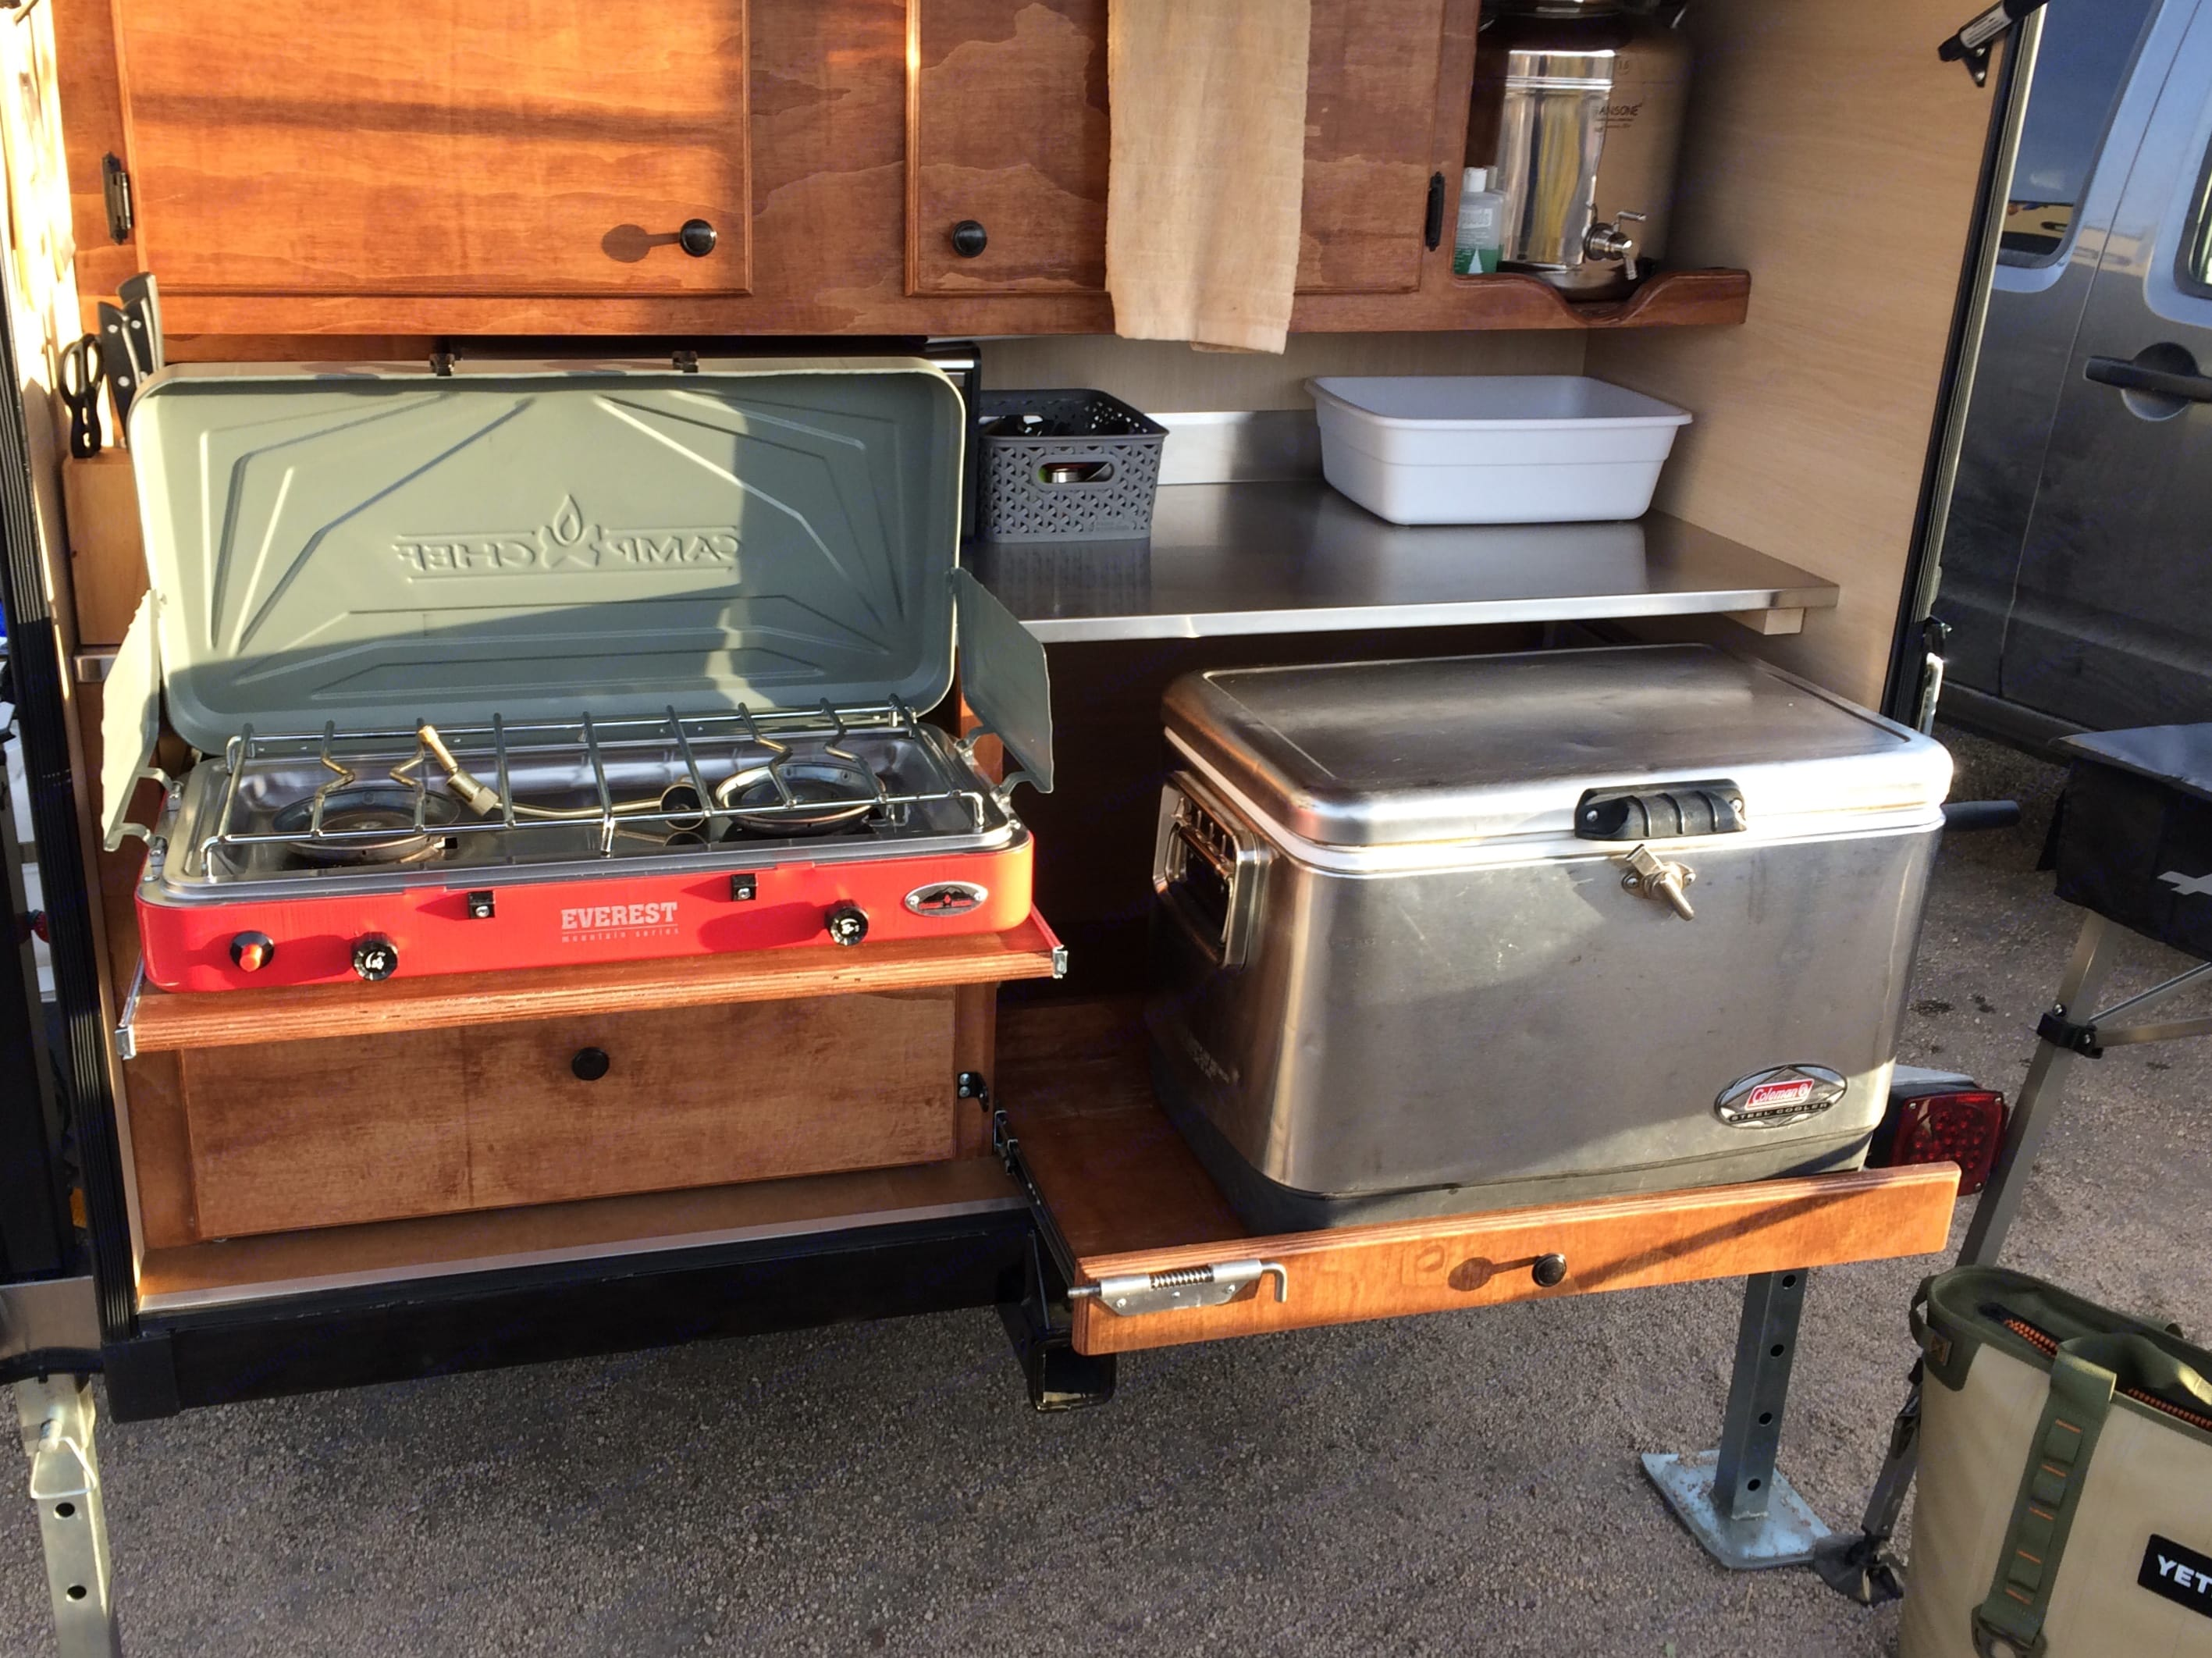 Comes with a Coleman Steel Belted cooler, Camp Chef 2 Burner stovetop with cast iron griddle, Dishwashing tubs, dish soap and towels. .. Alpine Other 2017